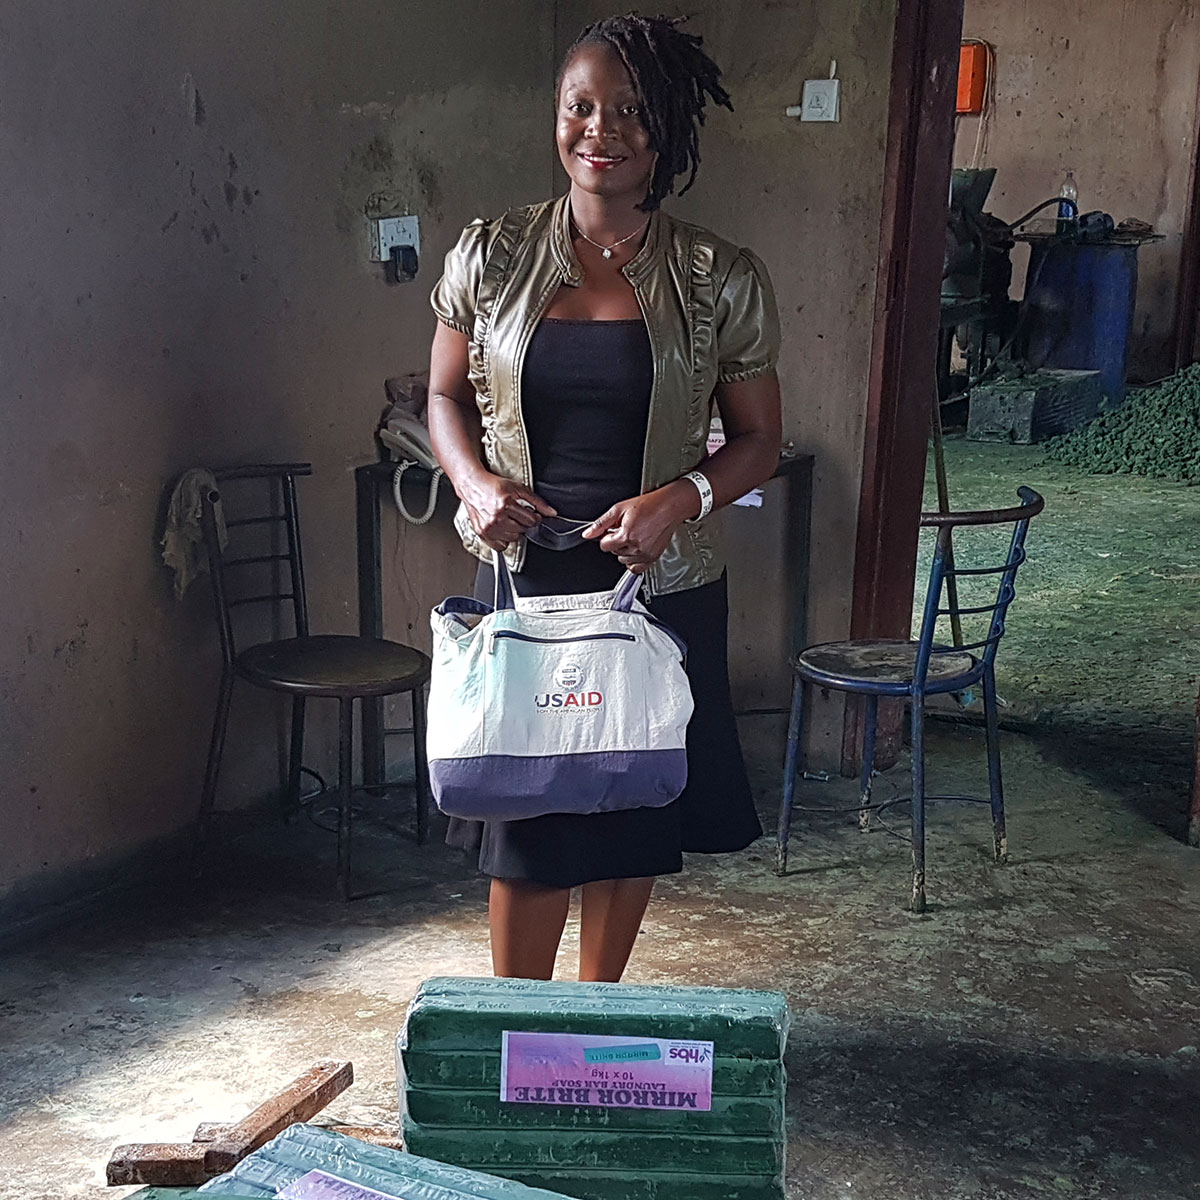 The amazing reason why a Zimbabwe soap business is cleaning up